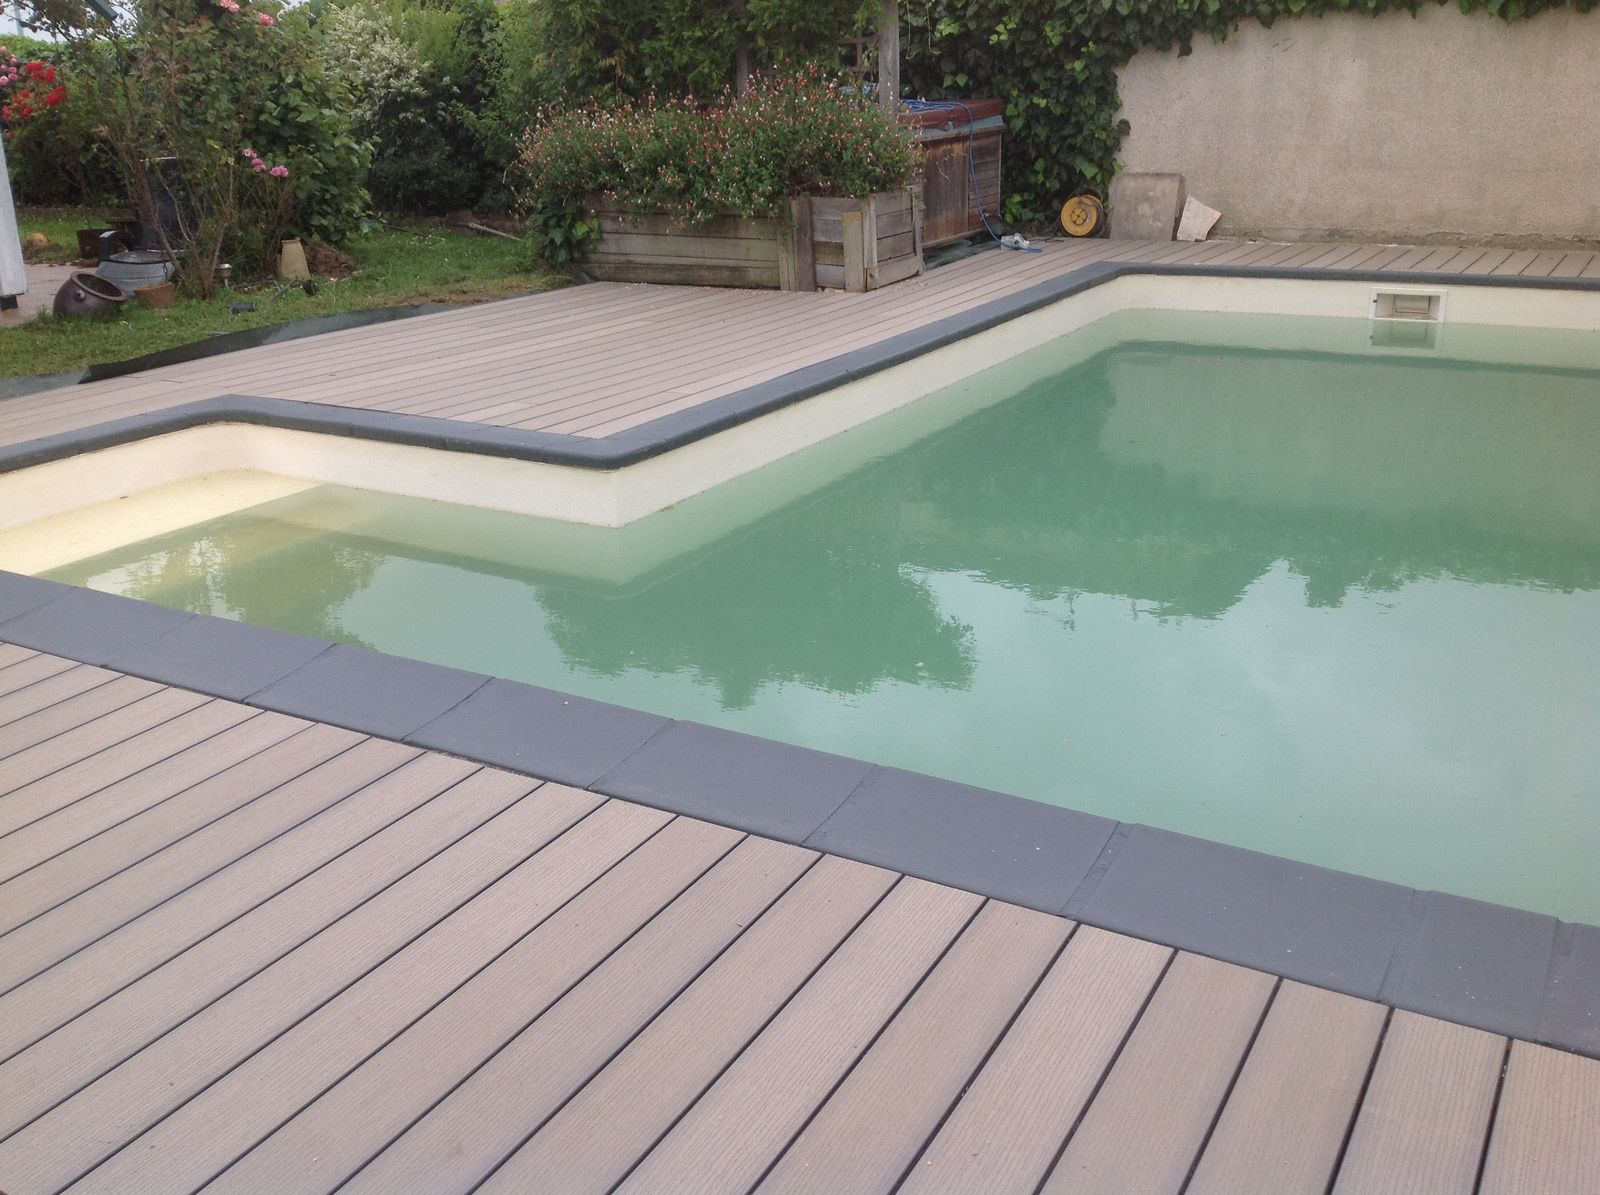 Terrasses composites quelques creations 2016 le blog for Piscine terrasse amovible